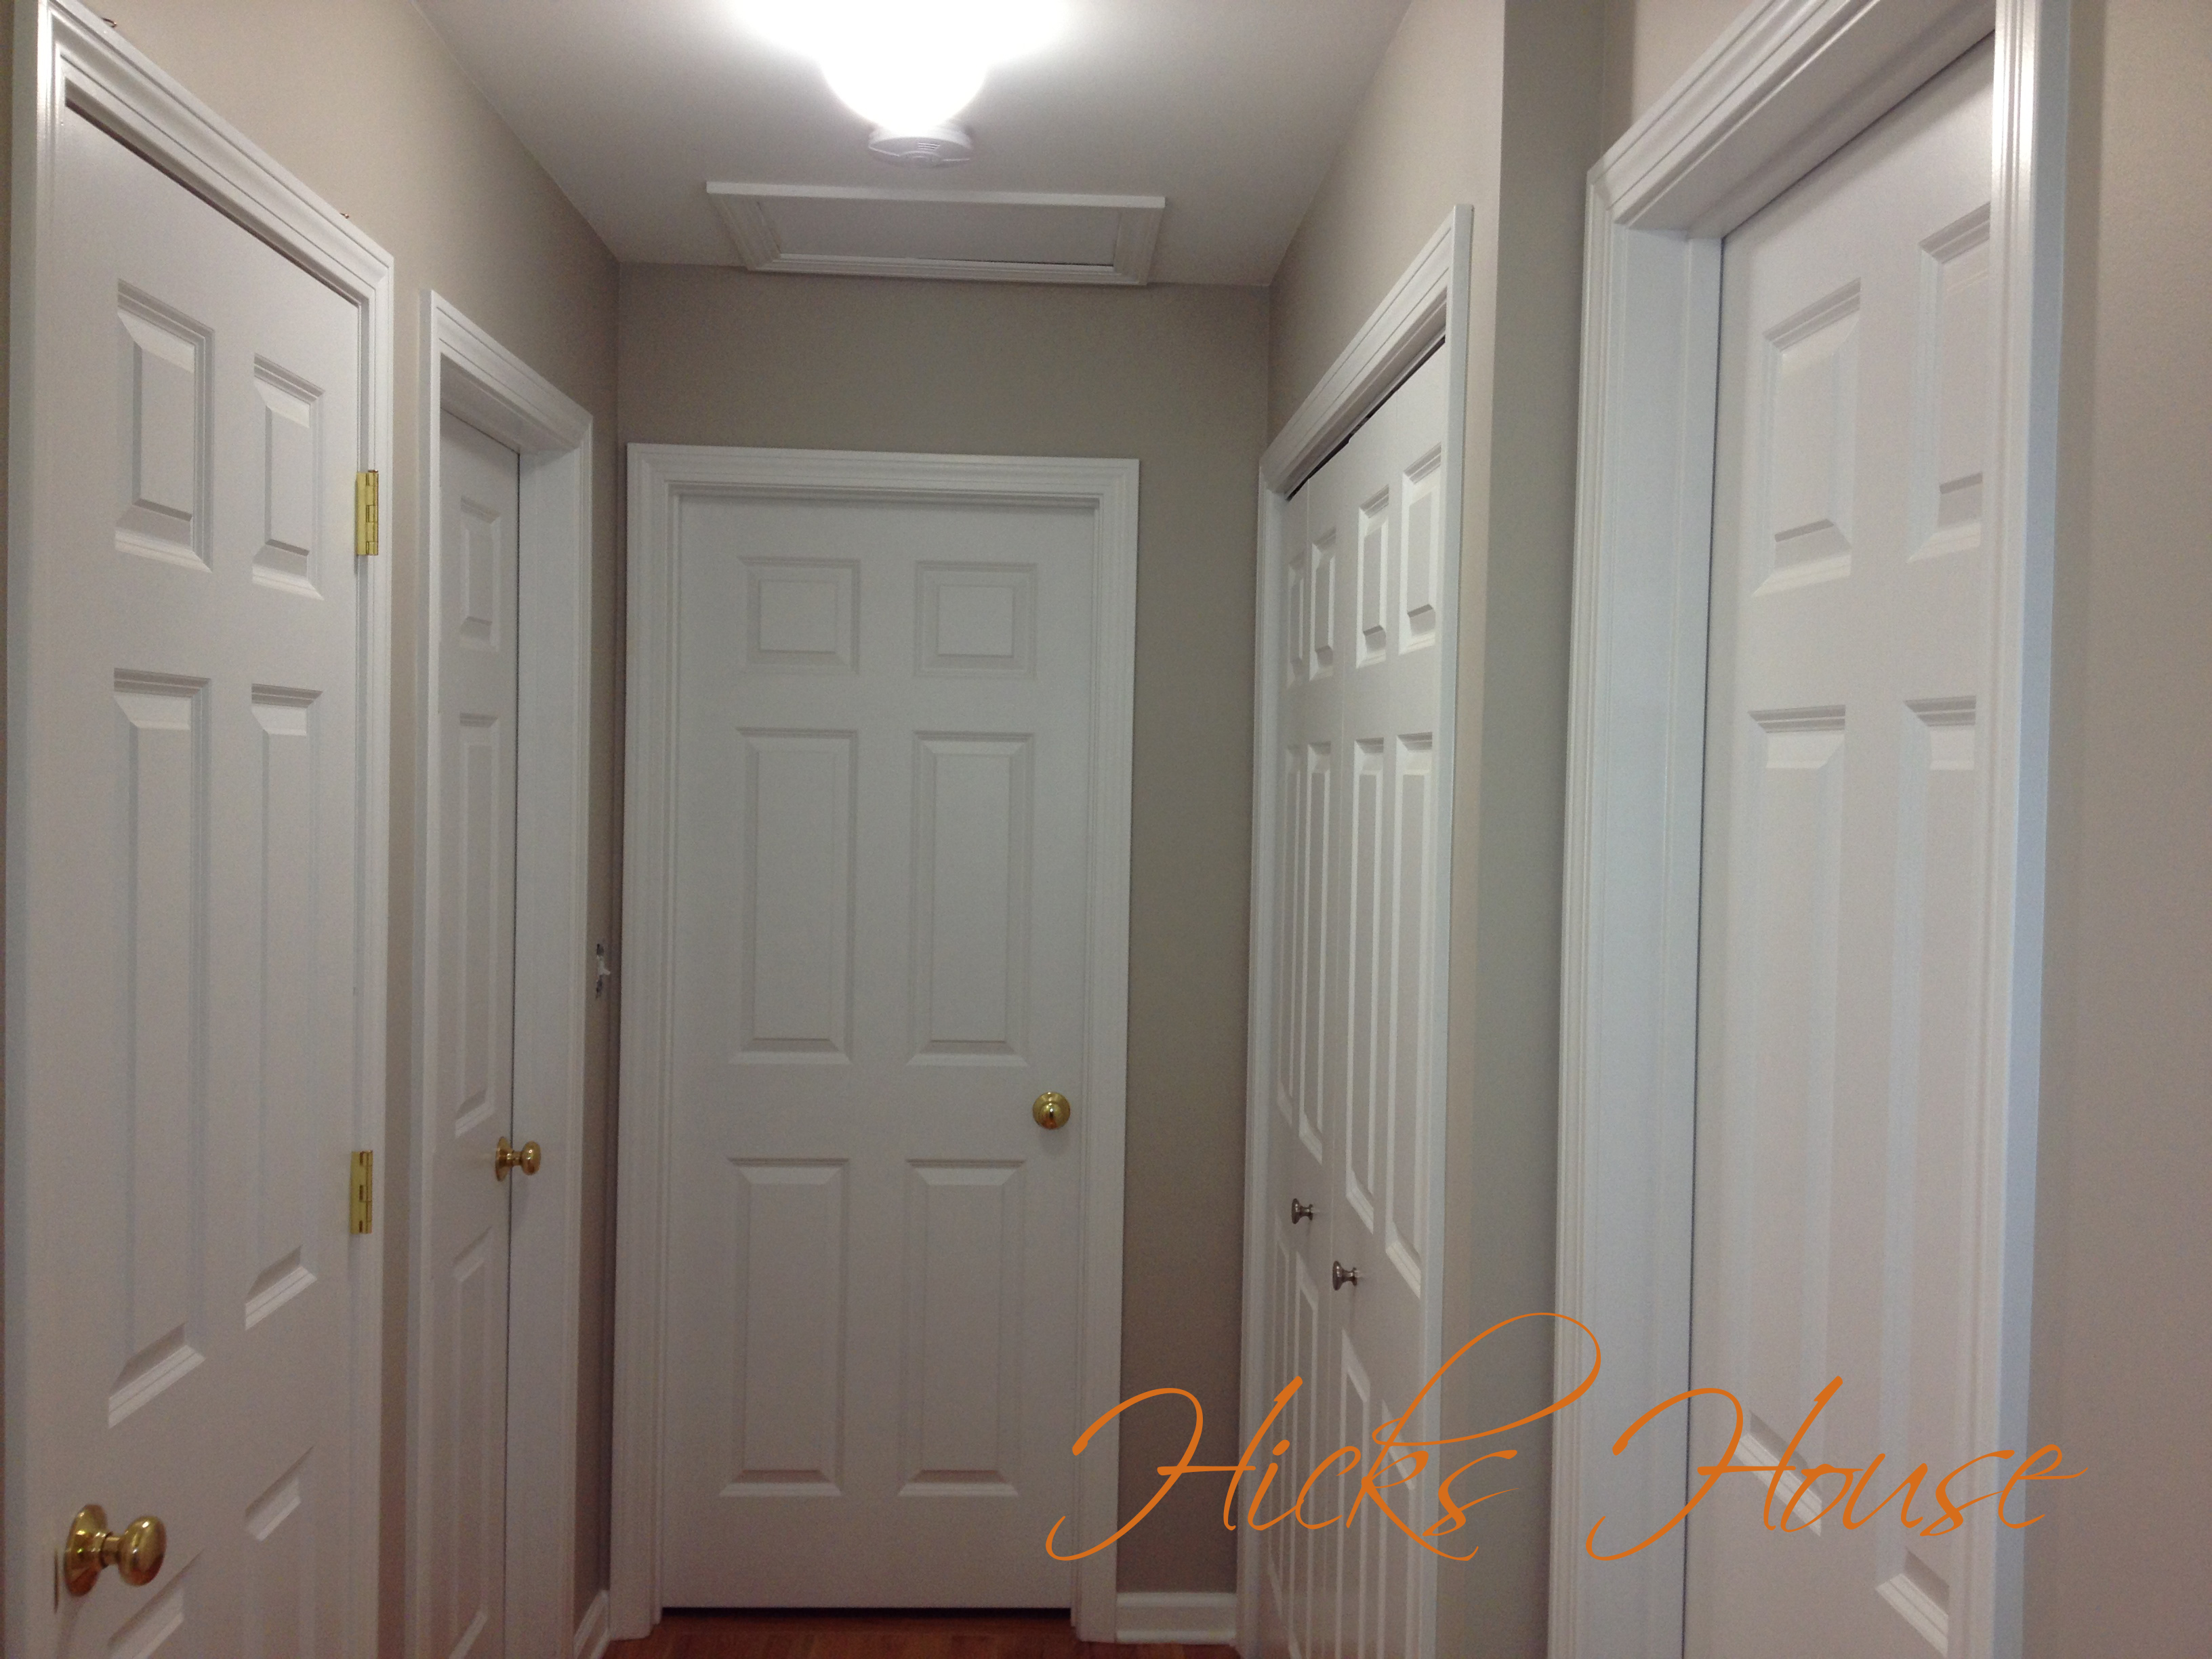 Paint Kitchen Cabinets Gray Benjamin Moore Revere Pewter Hicks House